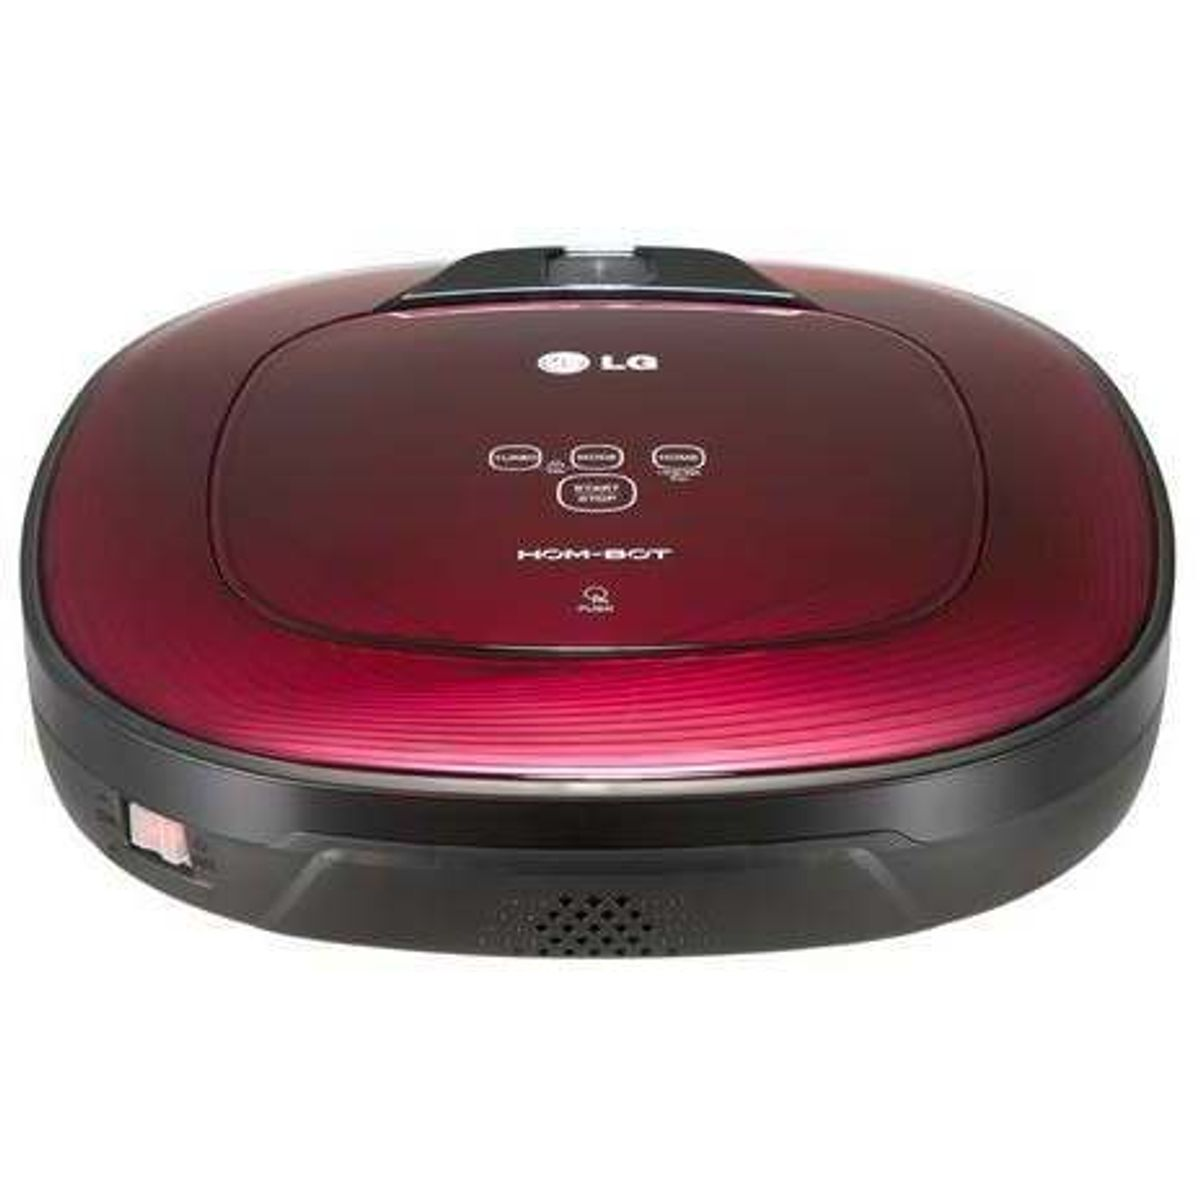 LG VR64701LVMP HomBot Square Pet Care